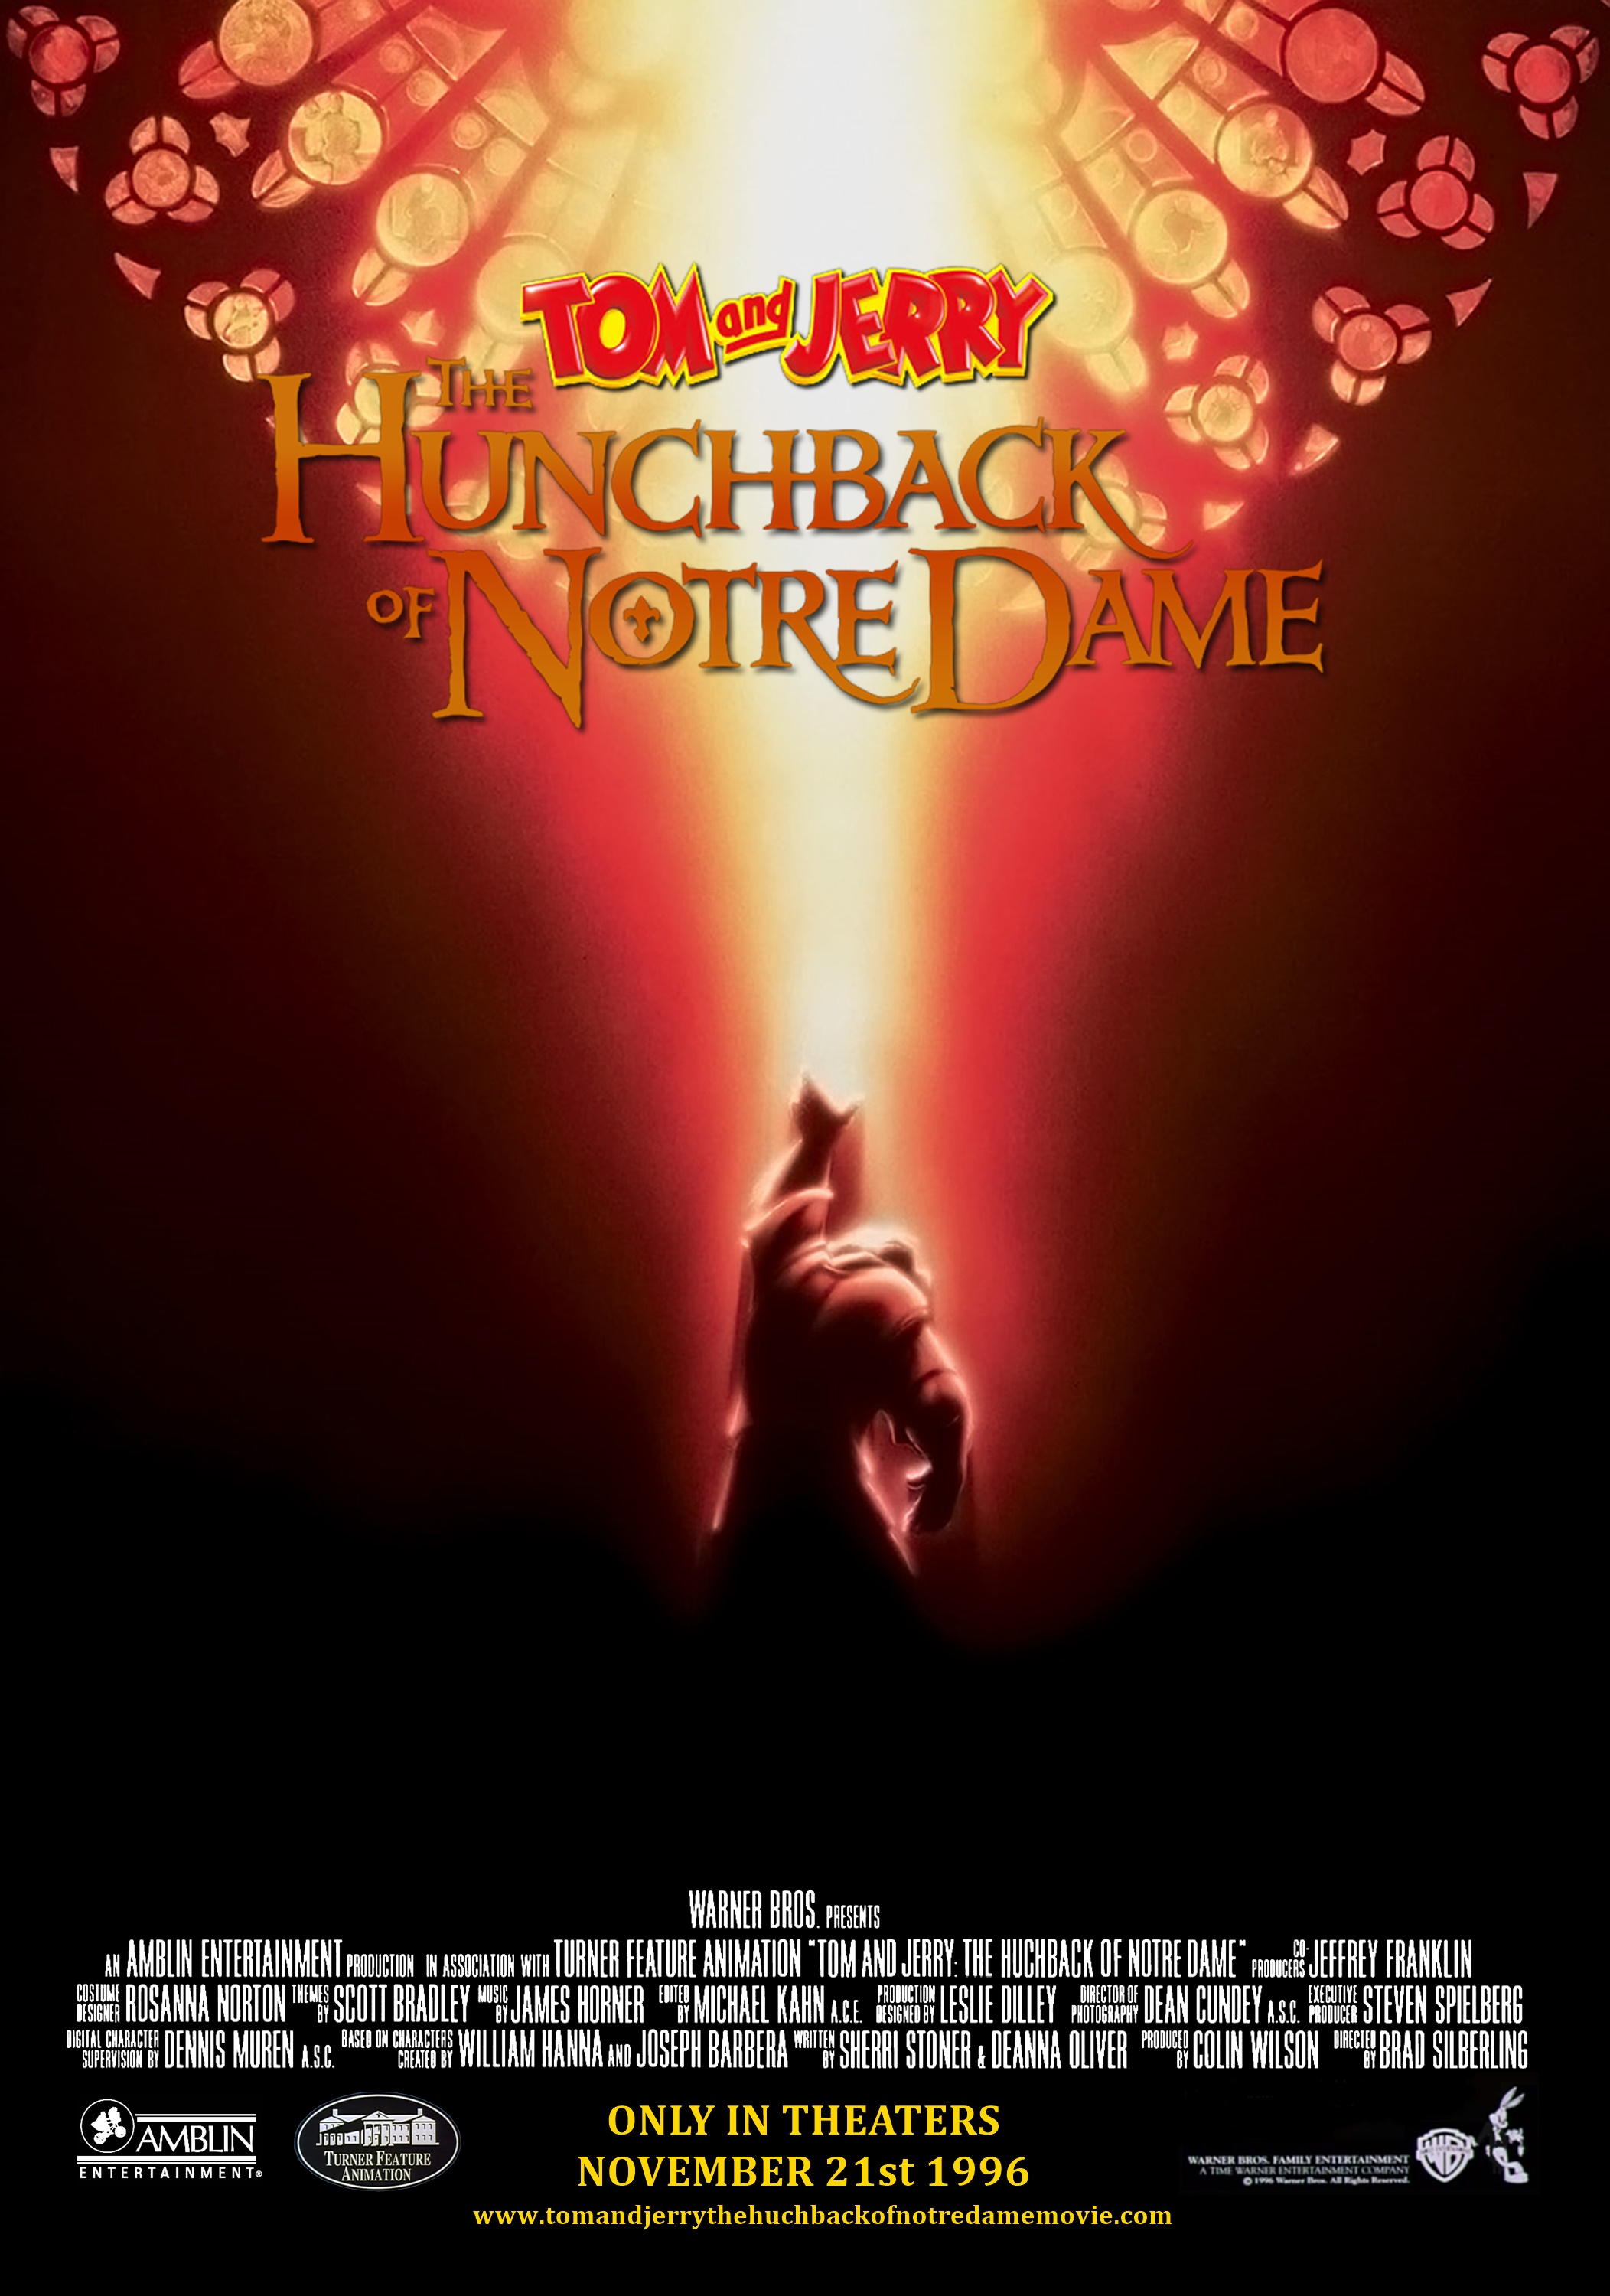 Tom and Jerry: The Hunchback of Notre Dame